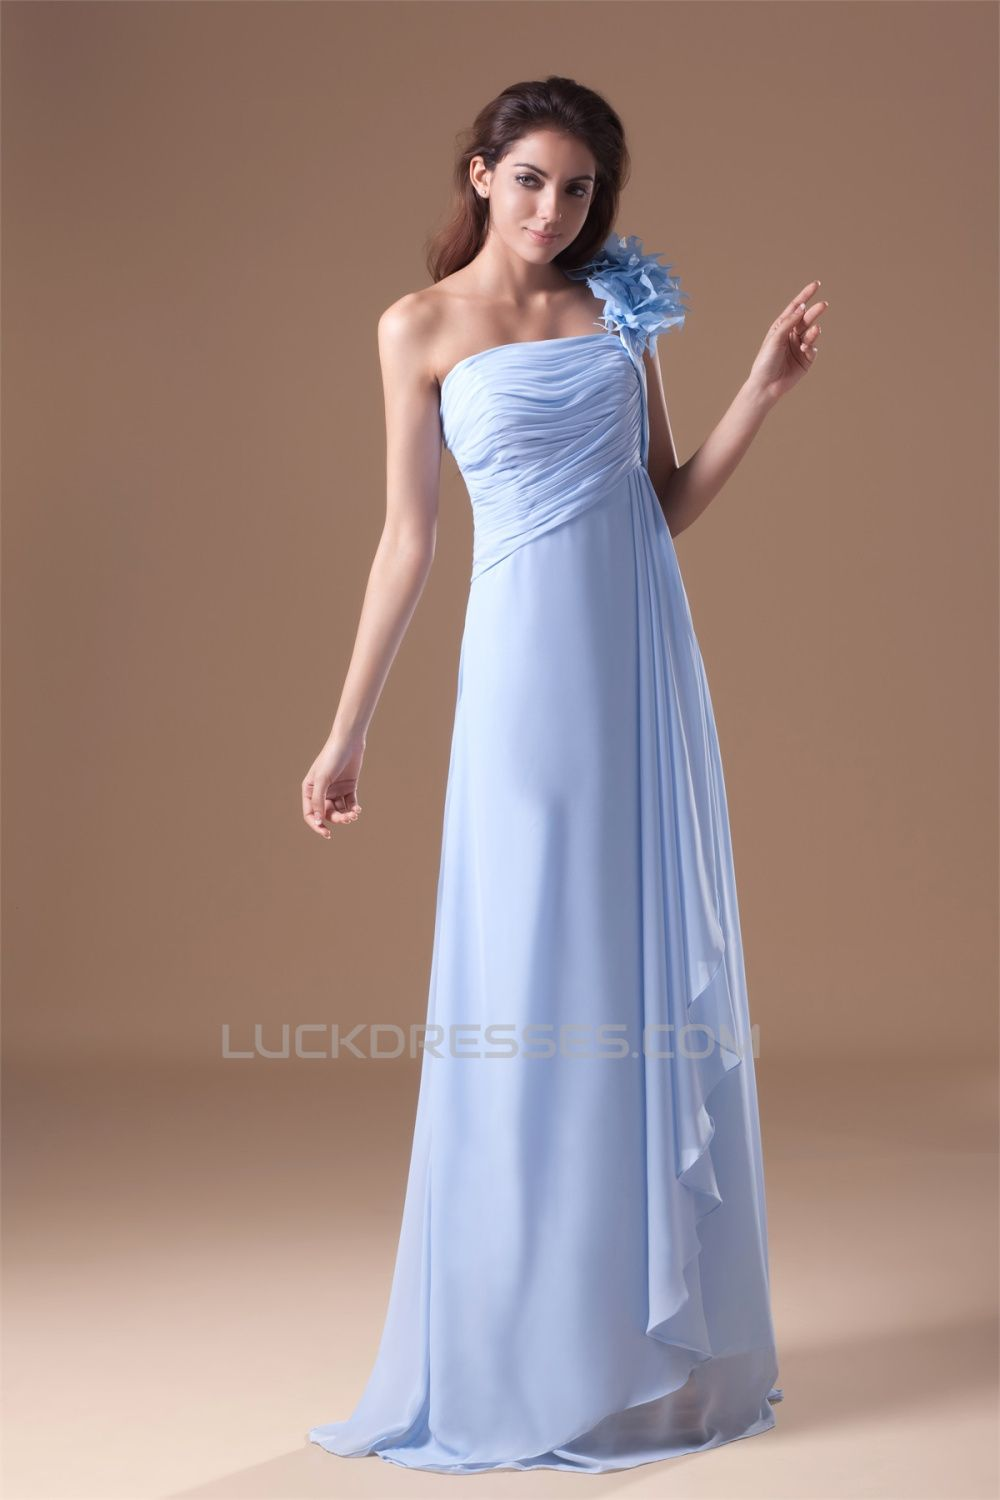 Aline oneshoulder long promformal evening bridesmaid dresses